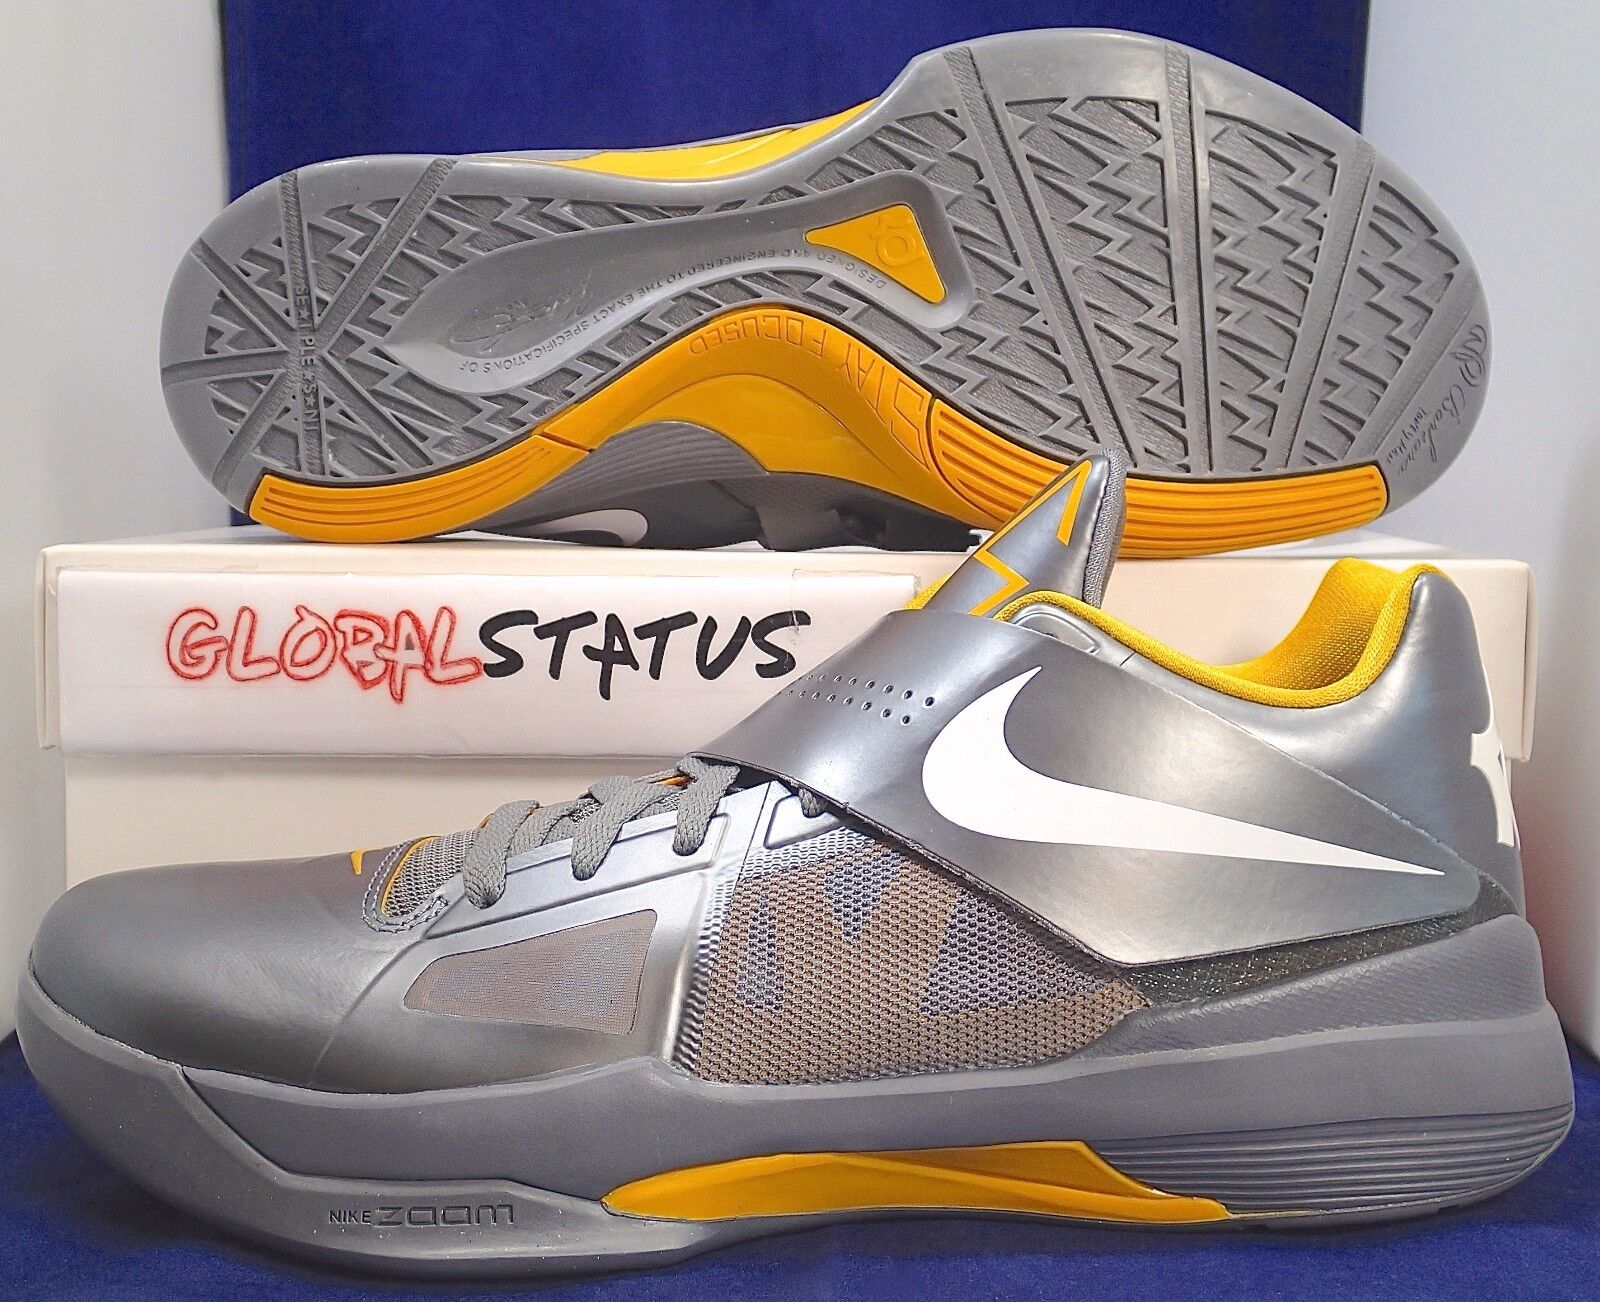 2011 NIKE KD IV 4 DEL SOL COOL GREY YELLOW BASKETBALL SHOES 473679 007 SIZE 11